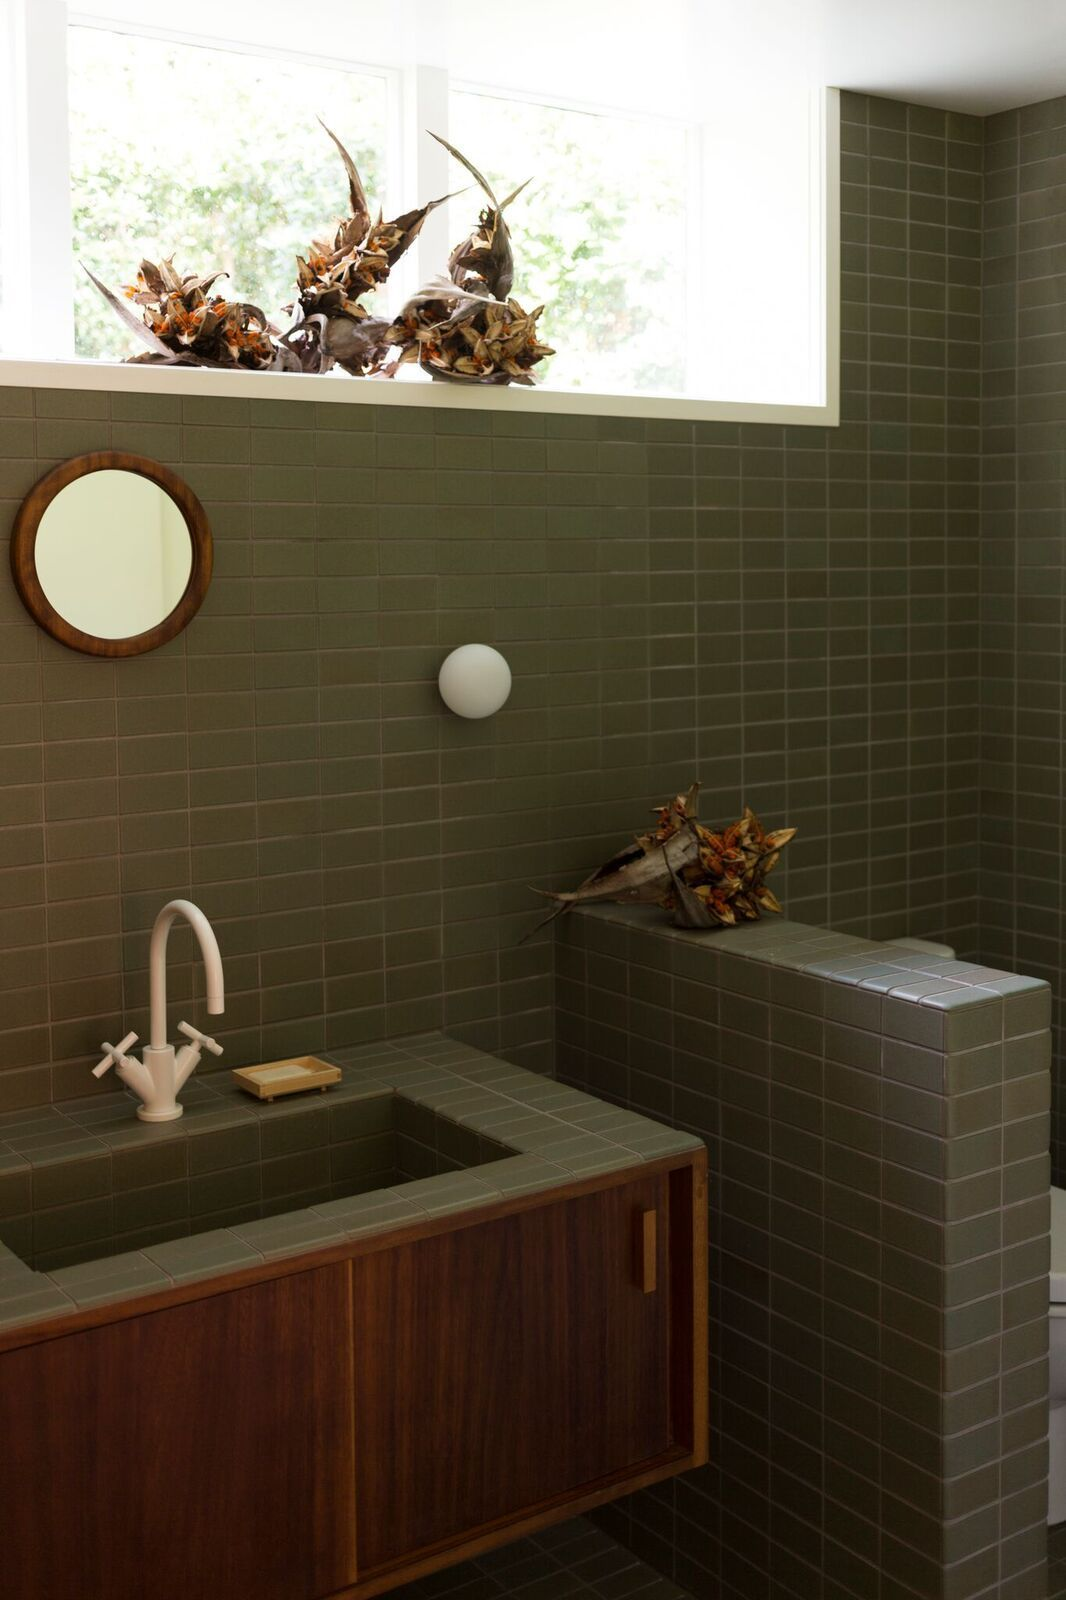 The Tile Is Heath Ceramics 2 By 4 Inch Tiles In Soapstone All Wood Elements Like The Console And M Green Tile Bathroom Green Bathroom Ceramic Tile Bathrooms